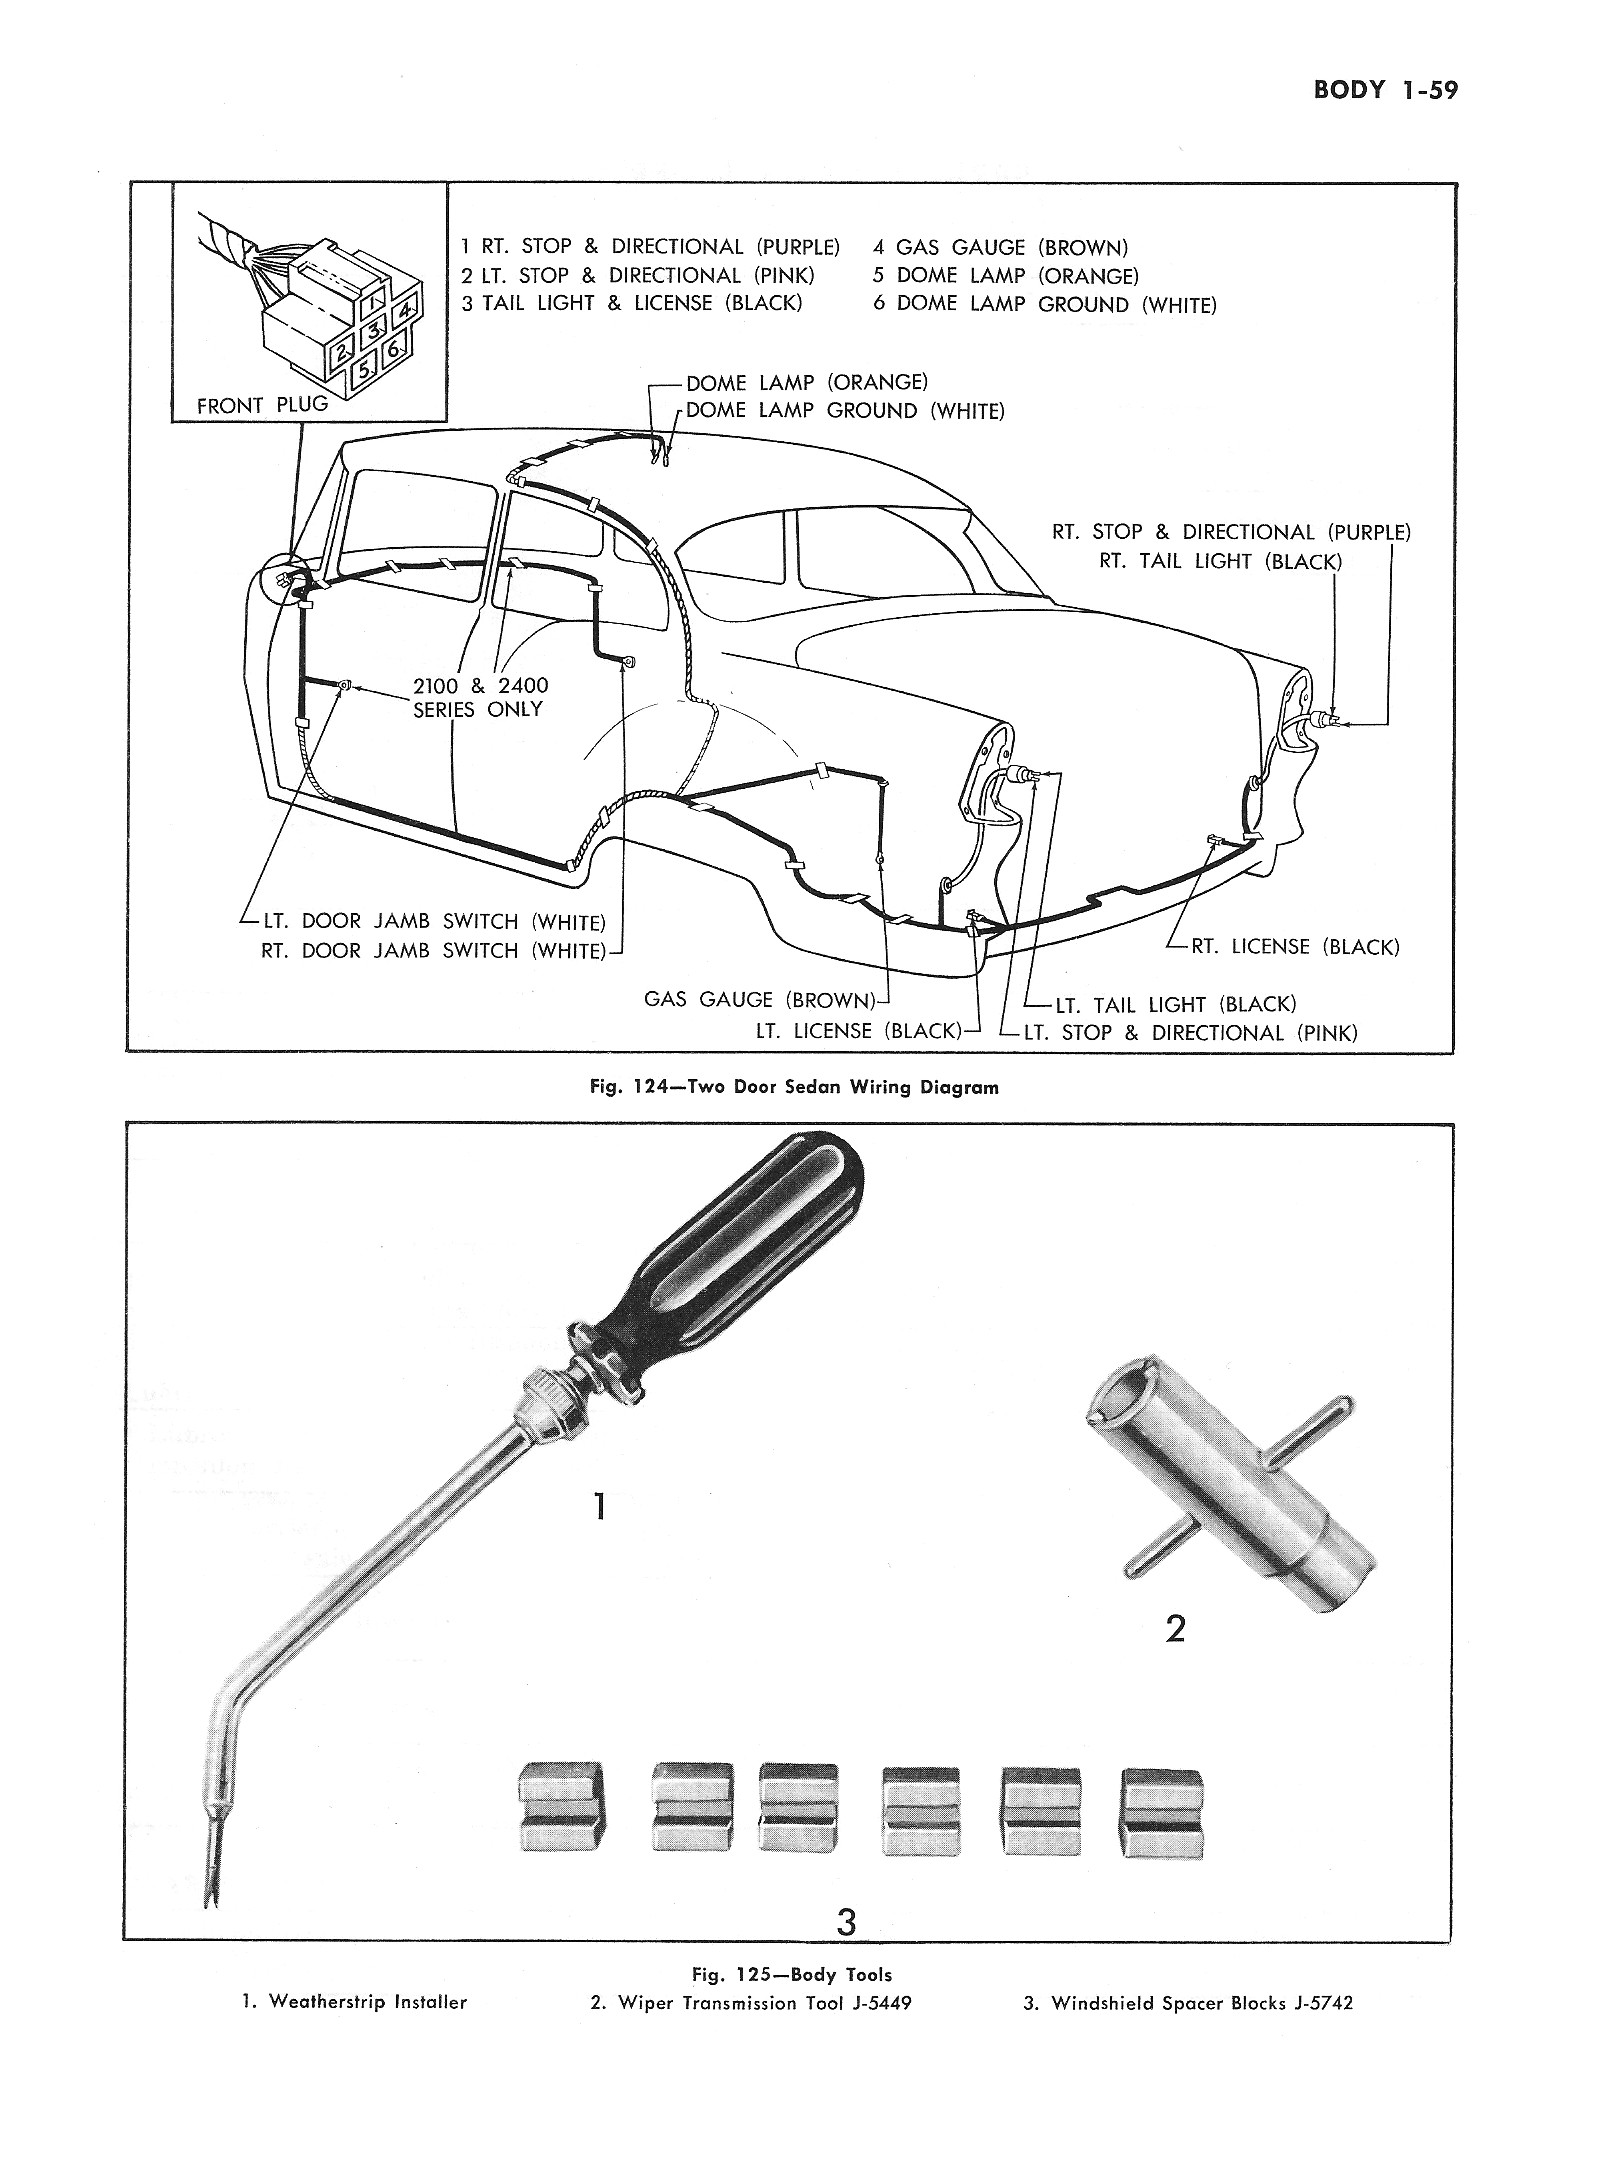 Chevy Wiring Diagrams Diagram For 1964 Chevrolet 6 And V8 Biscayne Belair Impala Part 2 1955 Passenger Car Body 3